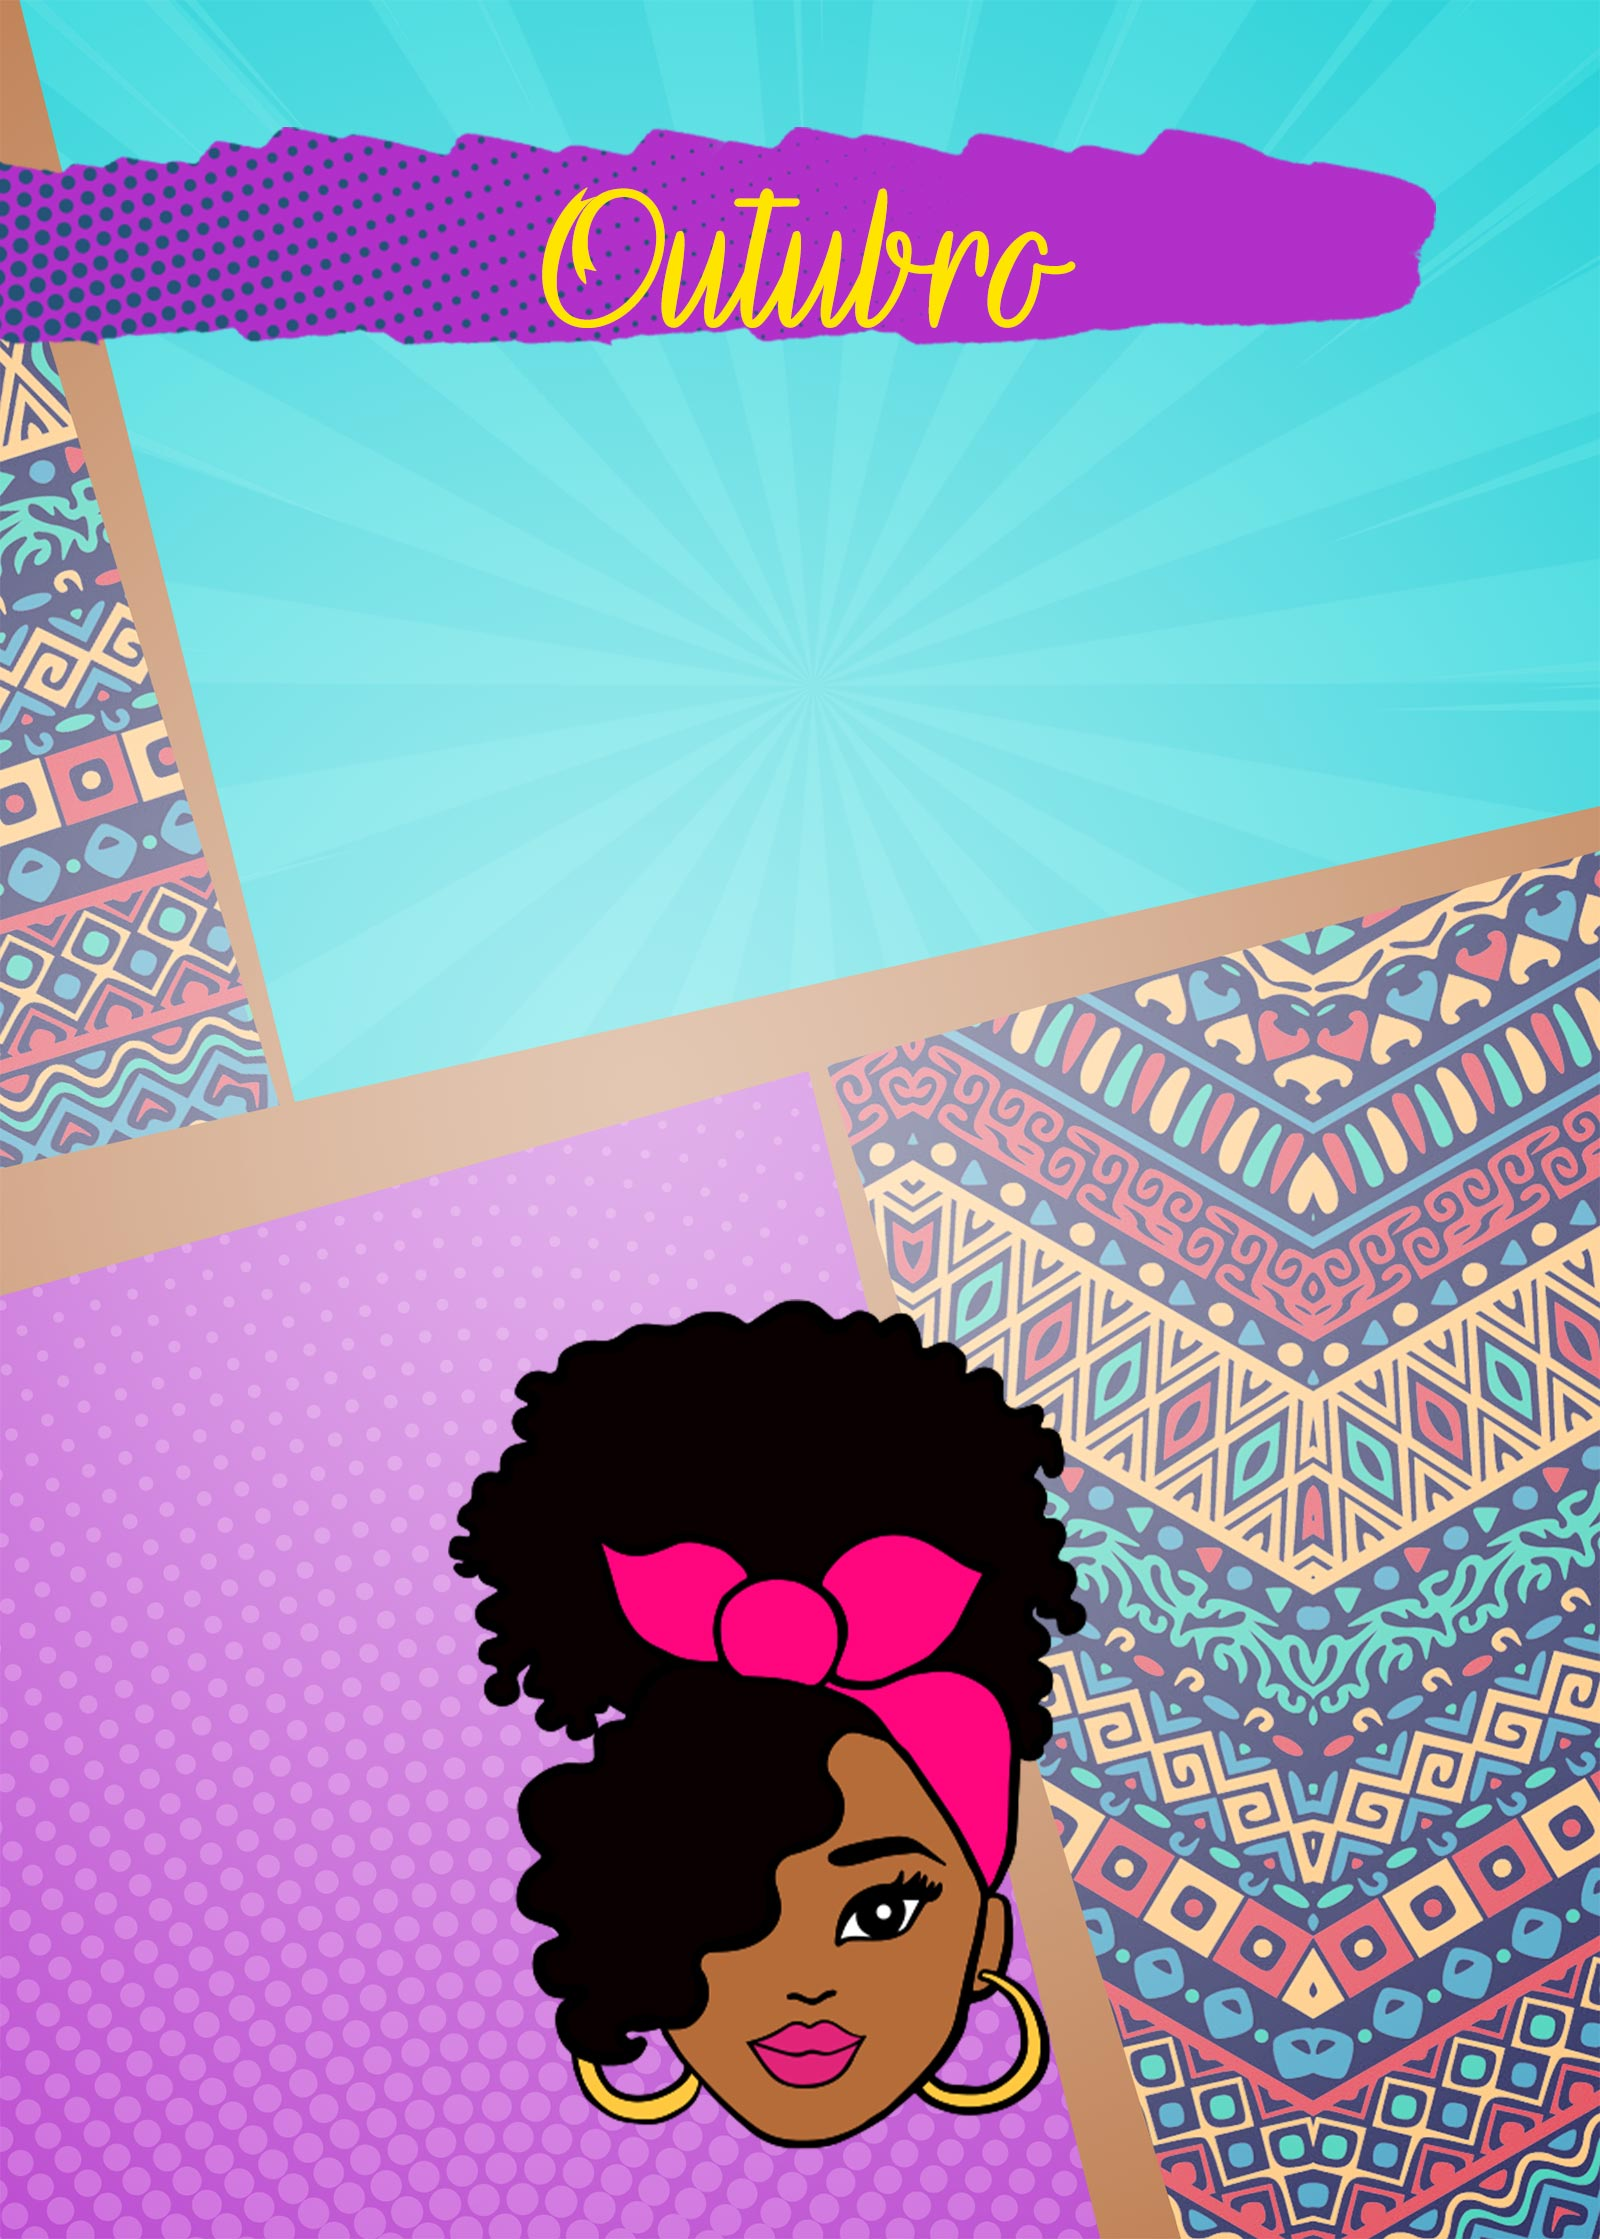 Planner Mulher Afro Capa Outubro